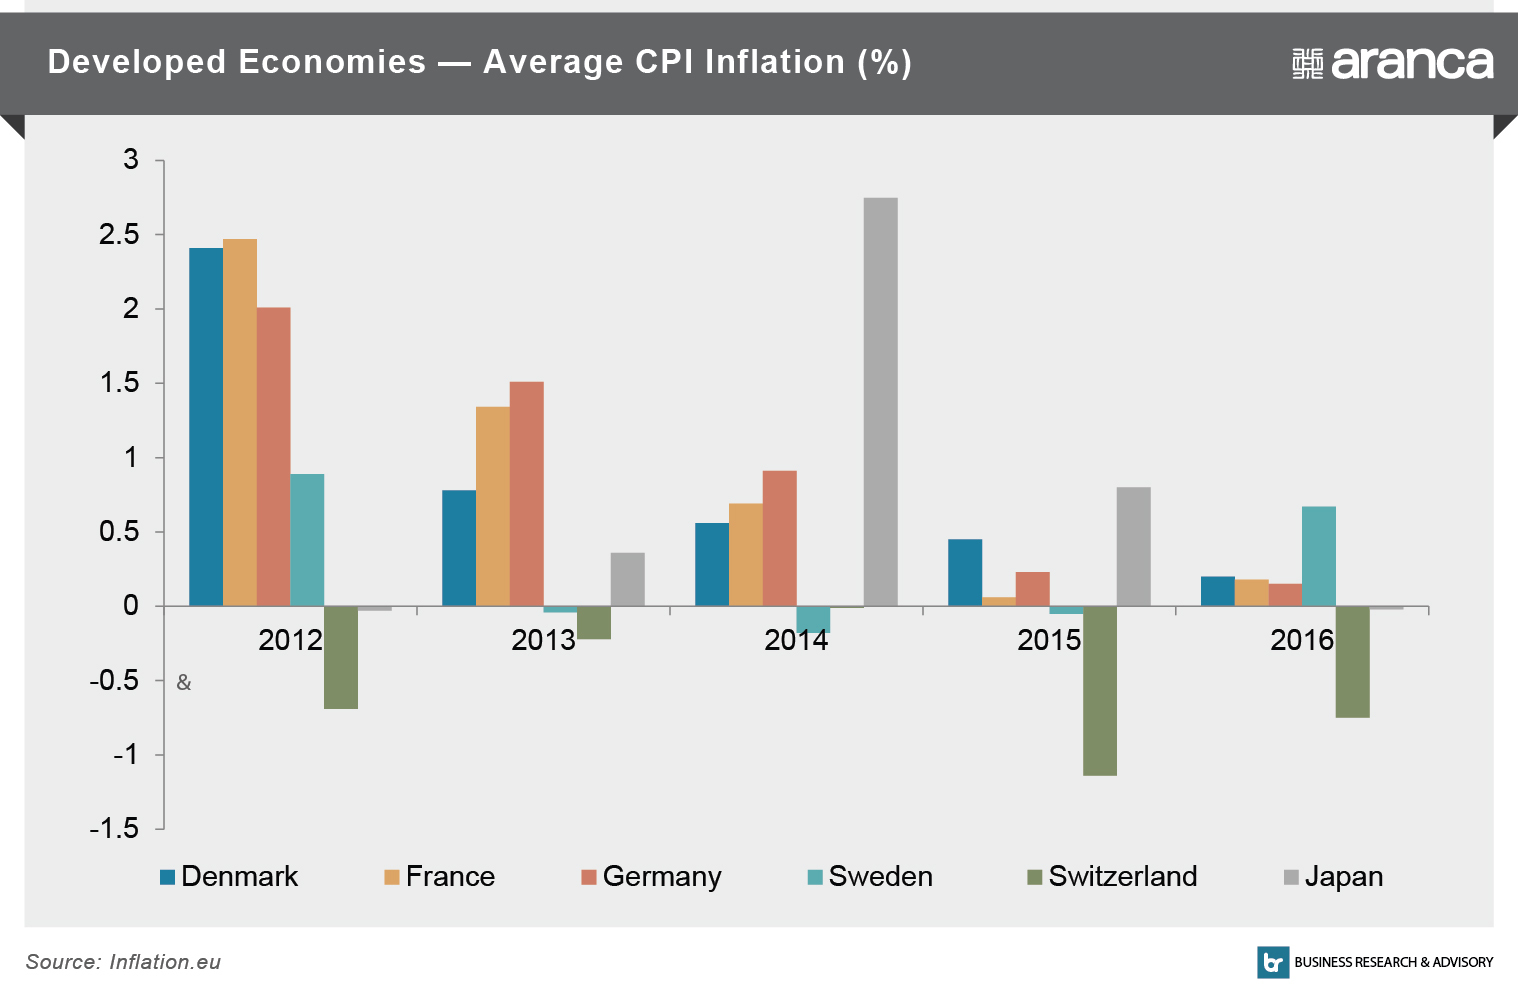 Developed Economies - Average CPI Inflation (%)